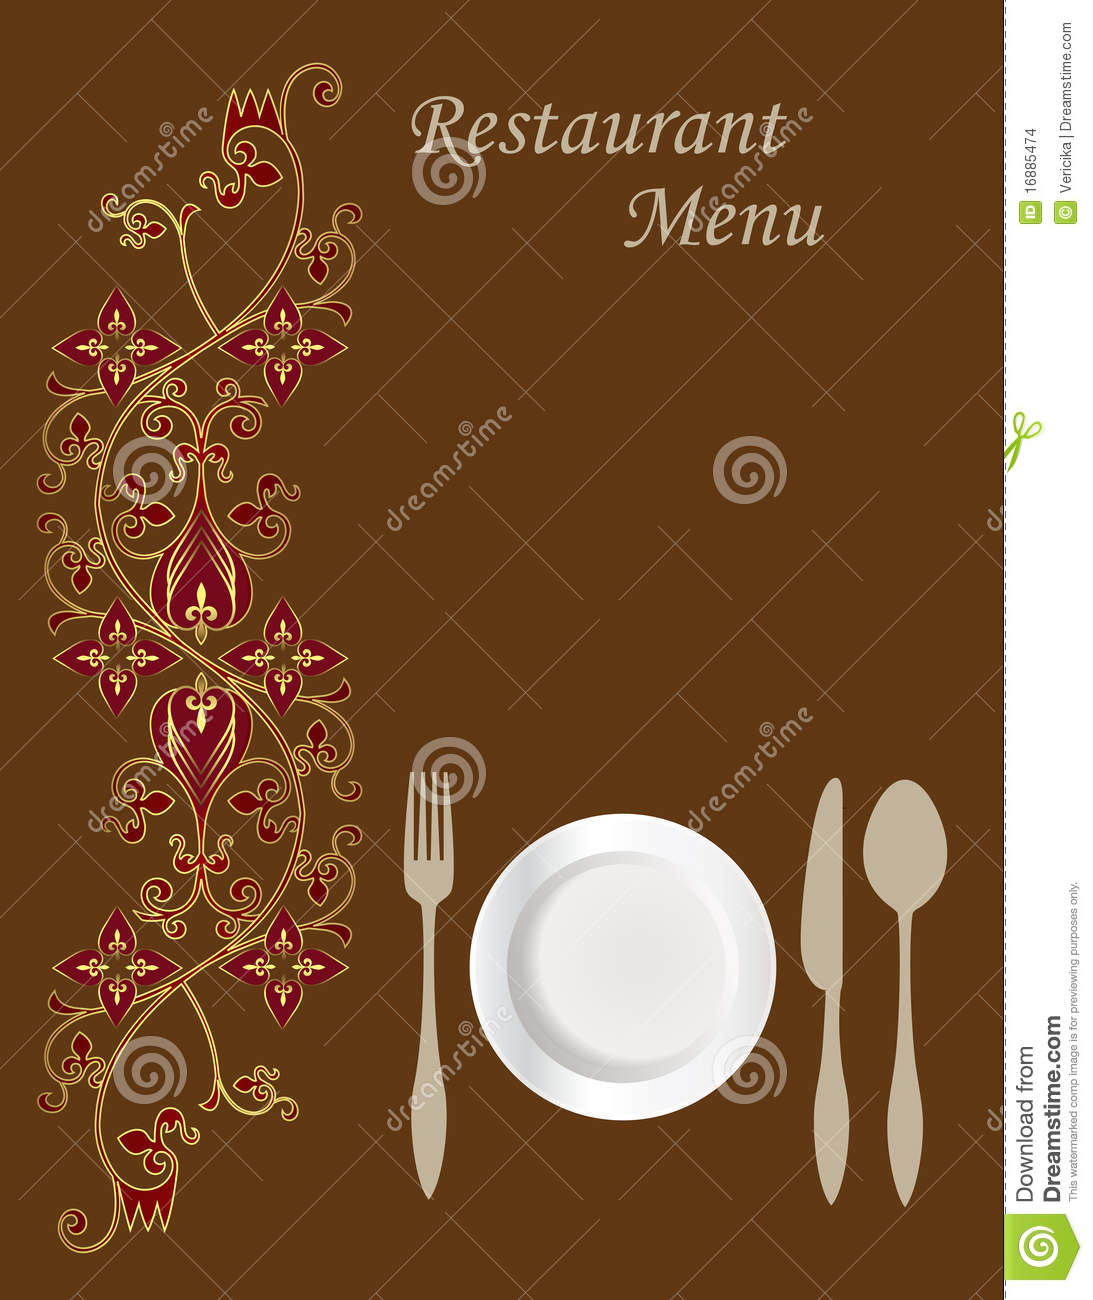 Menu Card Design Stock Images - Image: 16885474